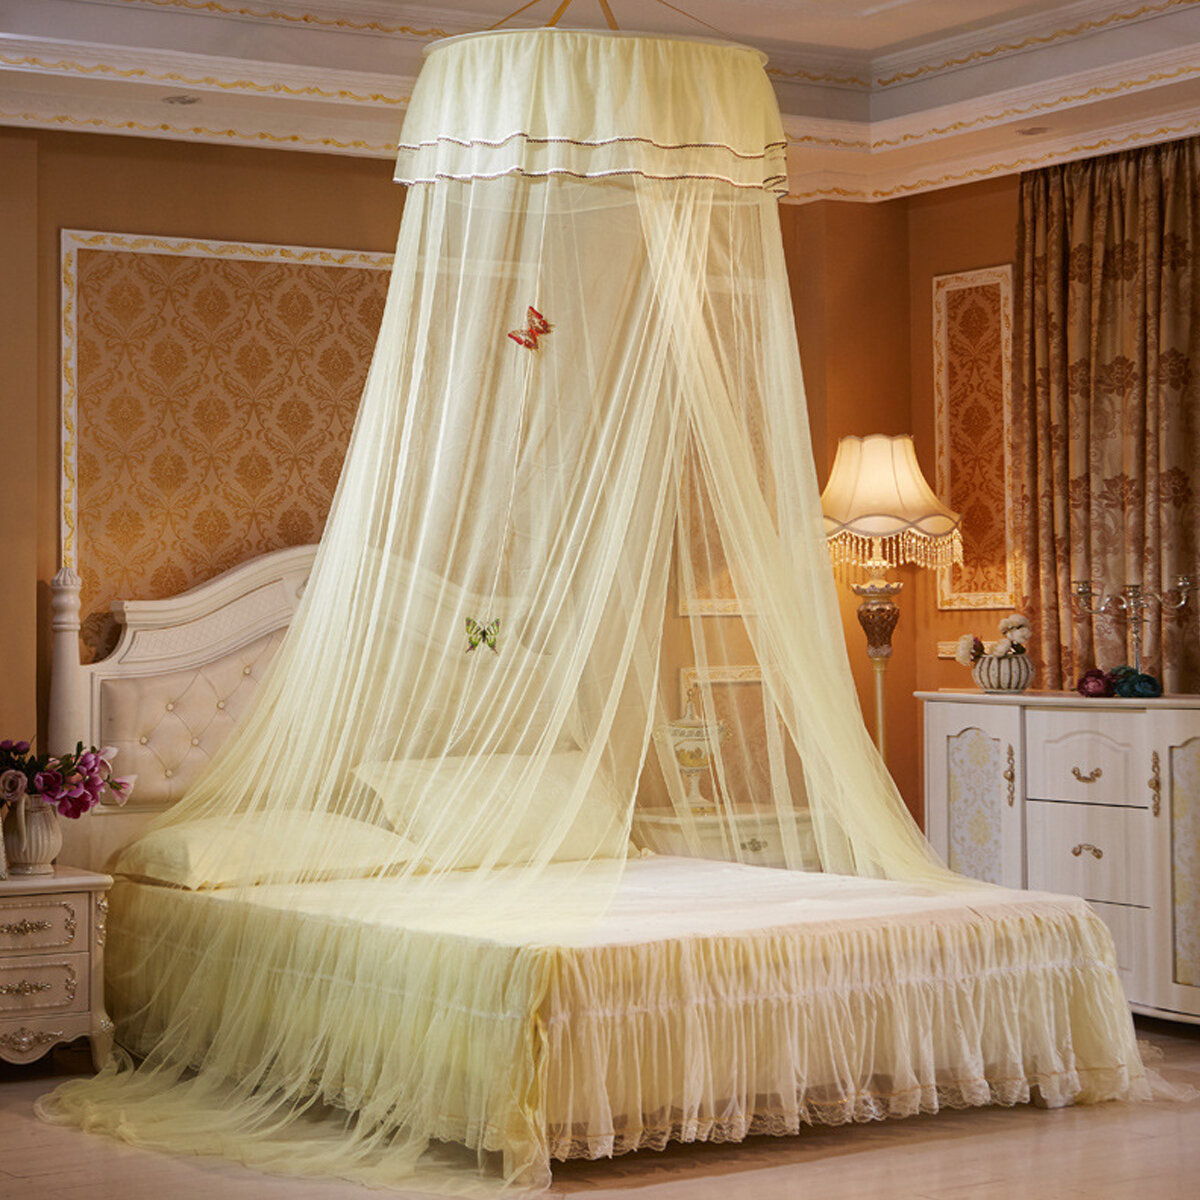 Ceiling Dome Large Mosquito Net Bed Canopy Maximum Insect Net Protection No Skin Irritation